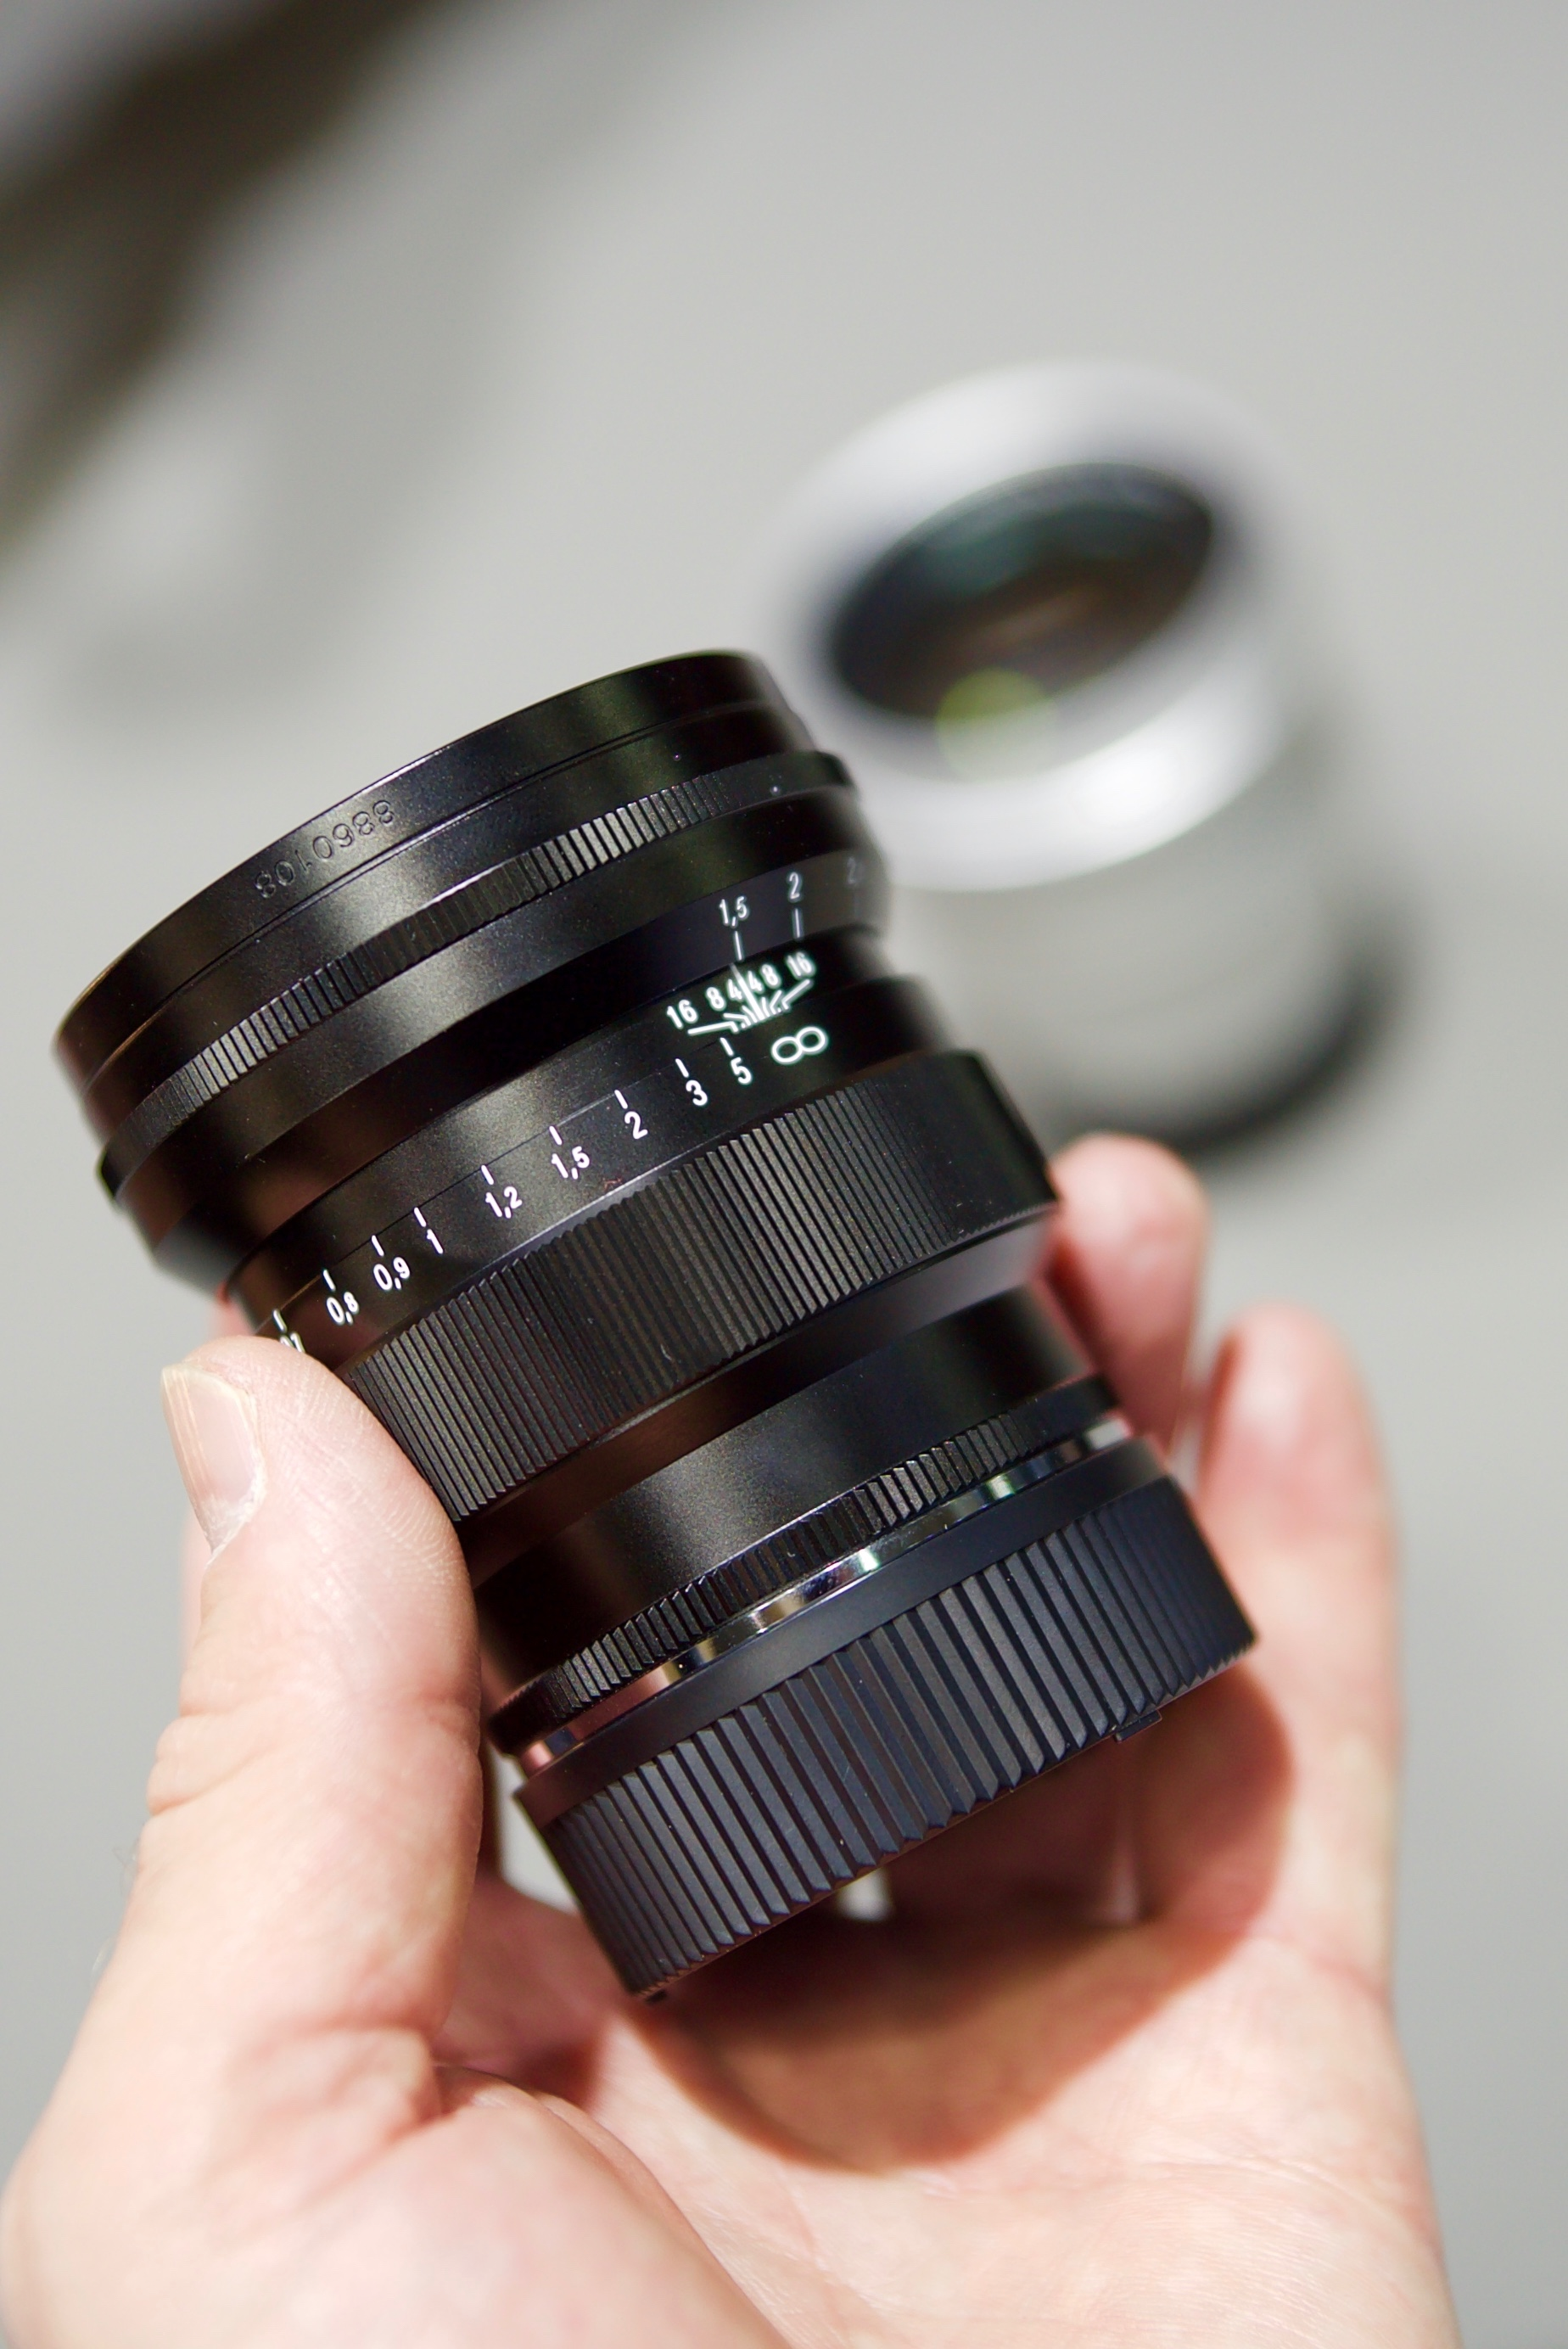 New Voigtlander NOKTON lenses at CP+ 2019